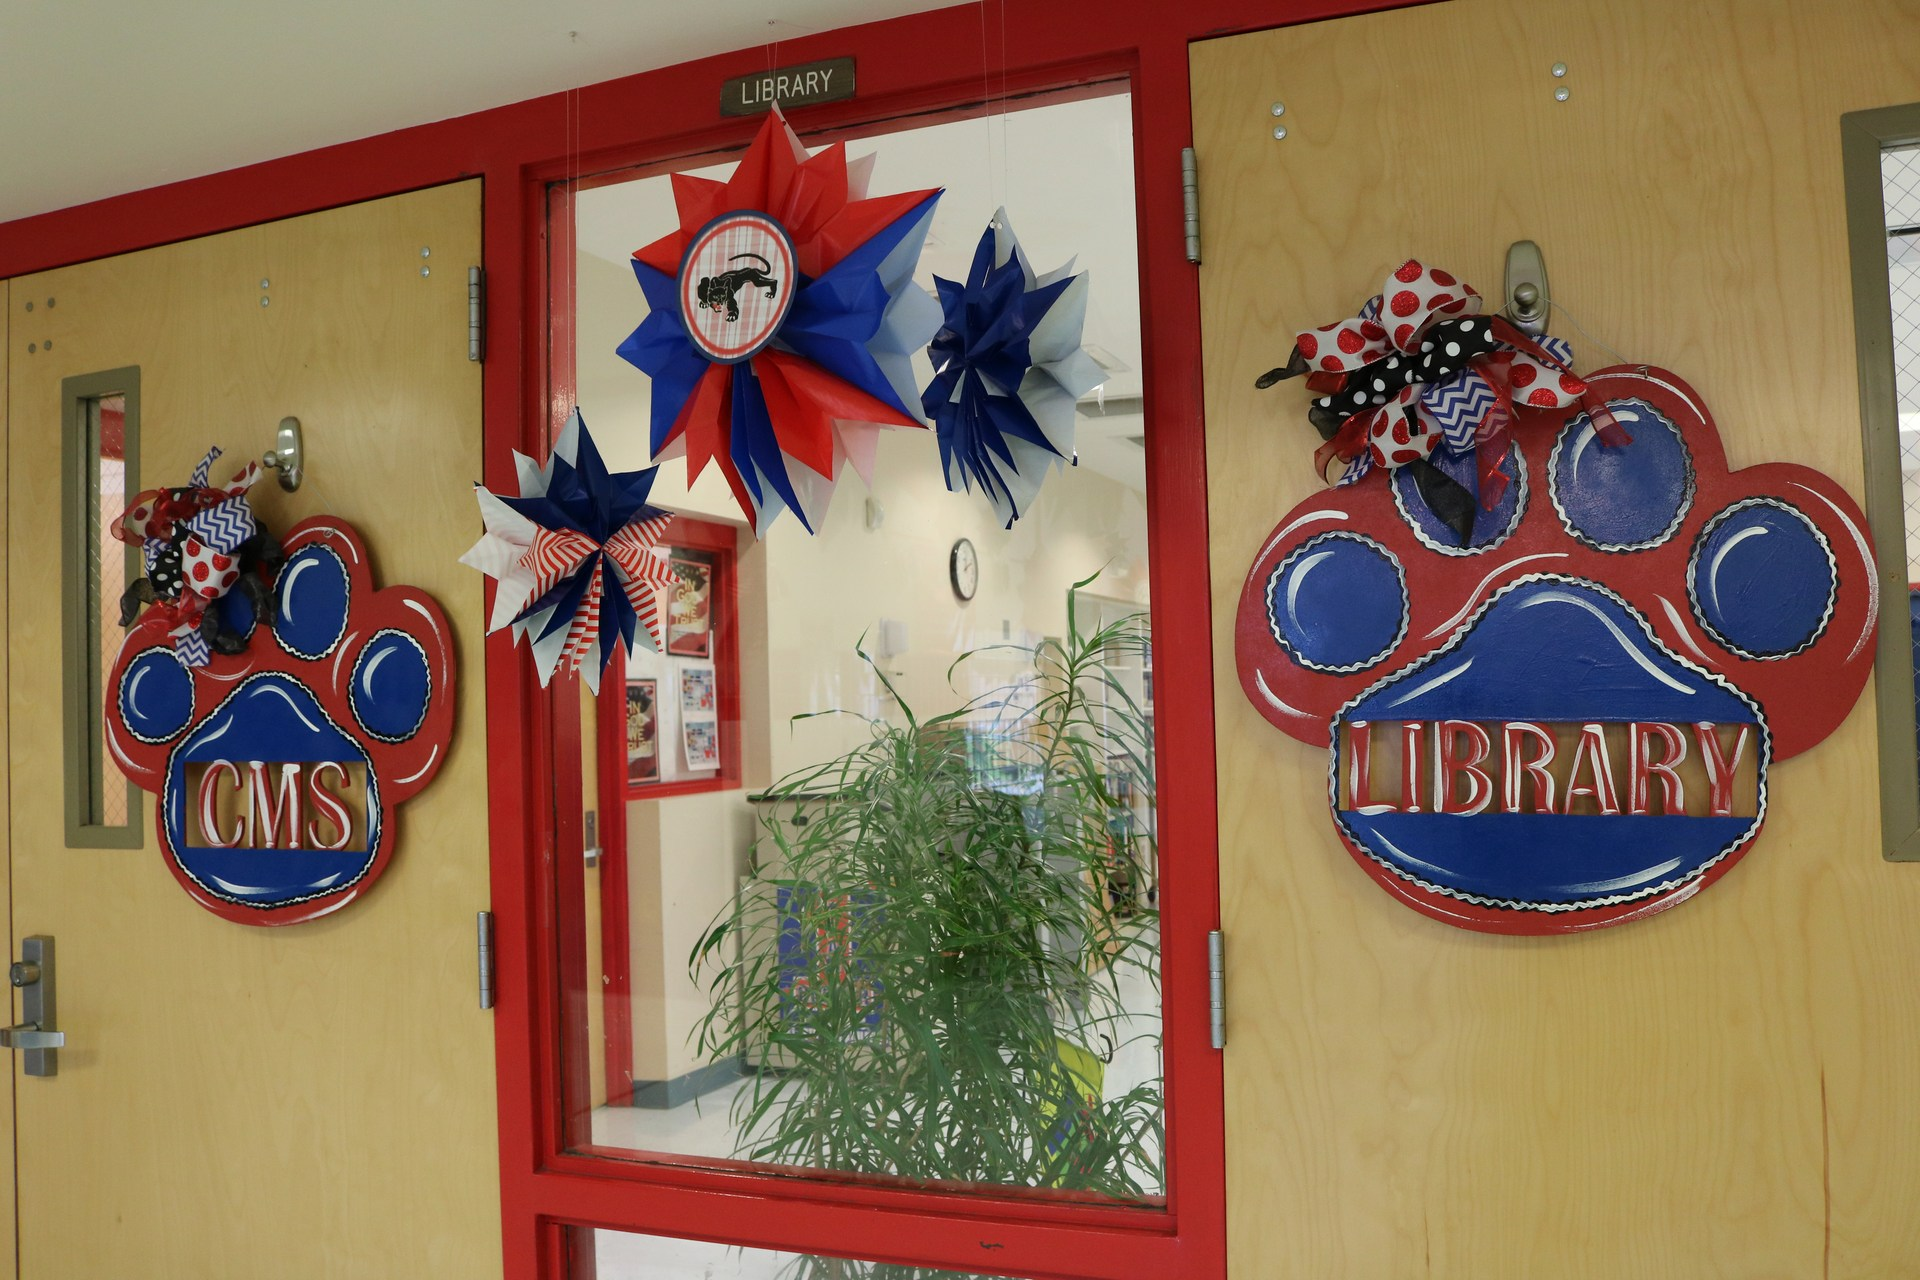 Library entrance door wreaths